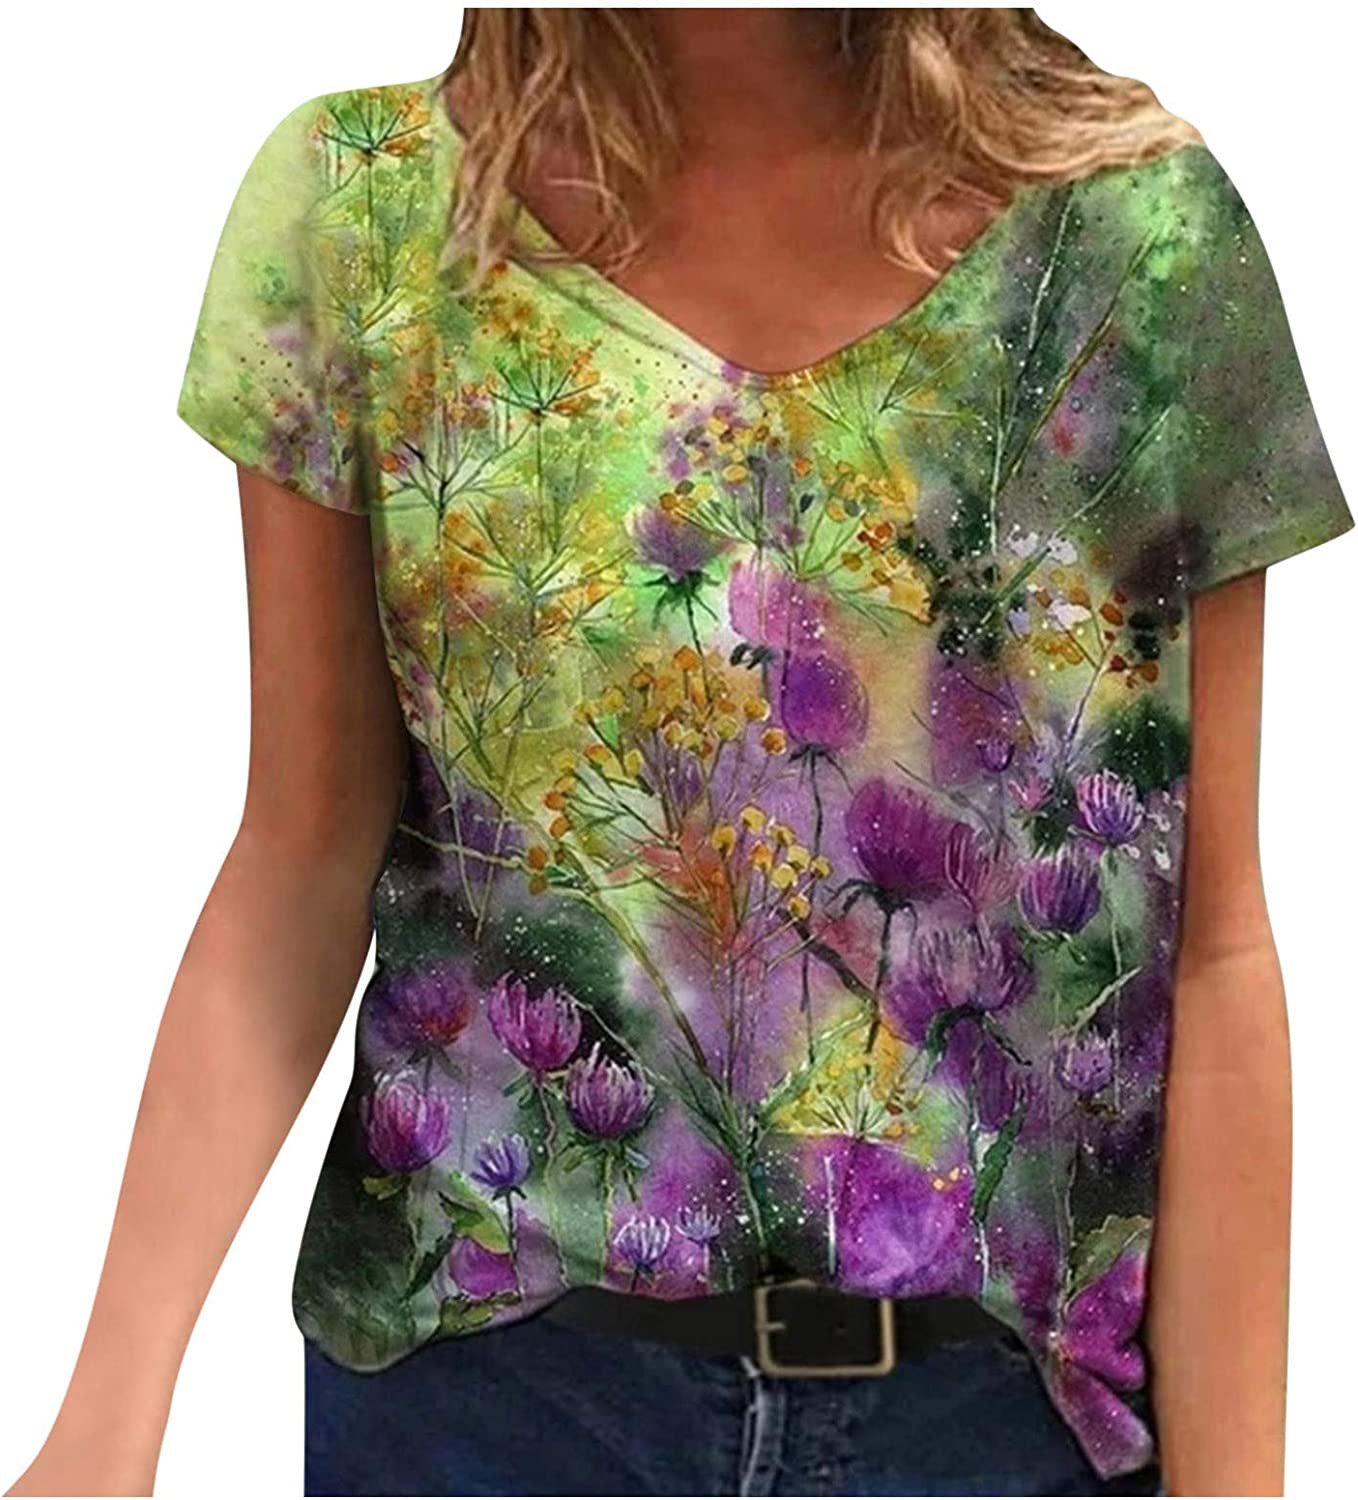 Graphic Tees In a popularity for Women Floral Prints safety V-Neck T- Sleeve Tops Short